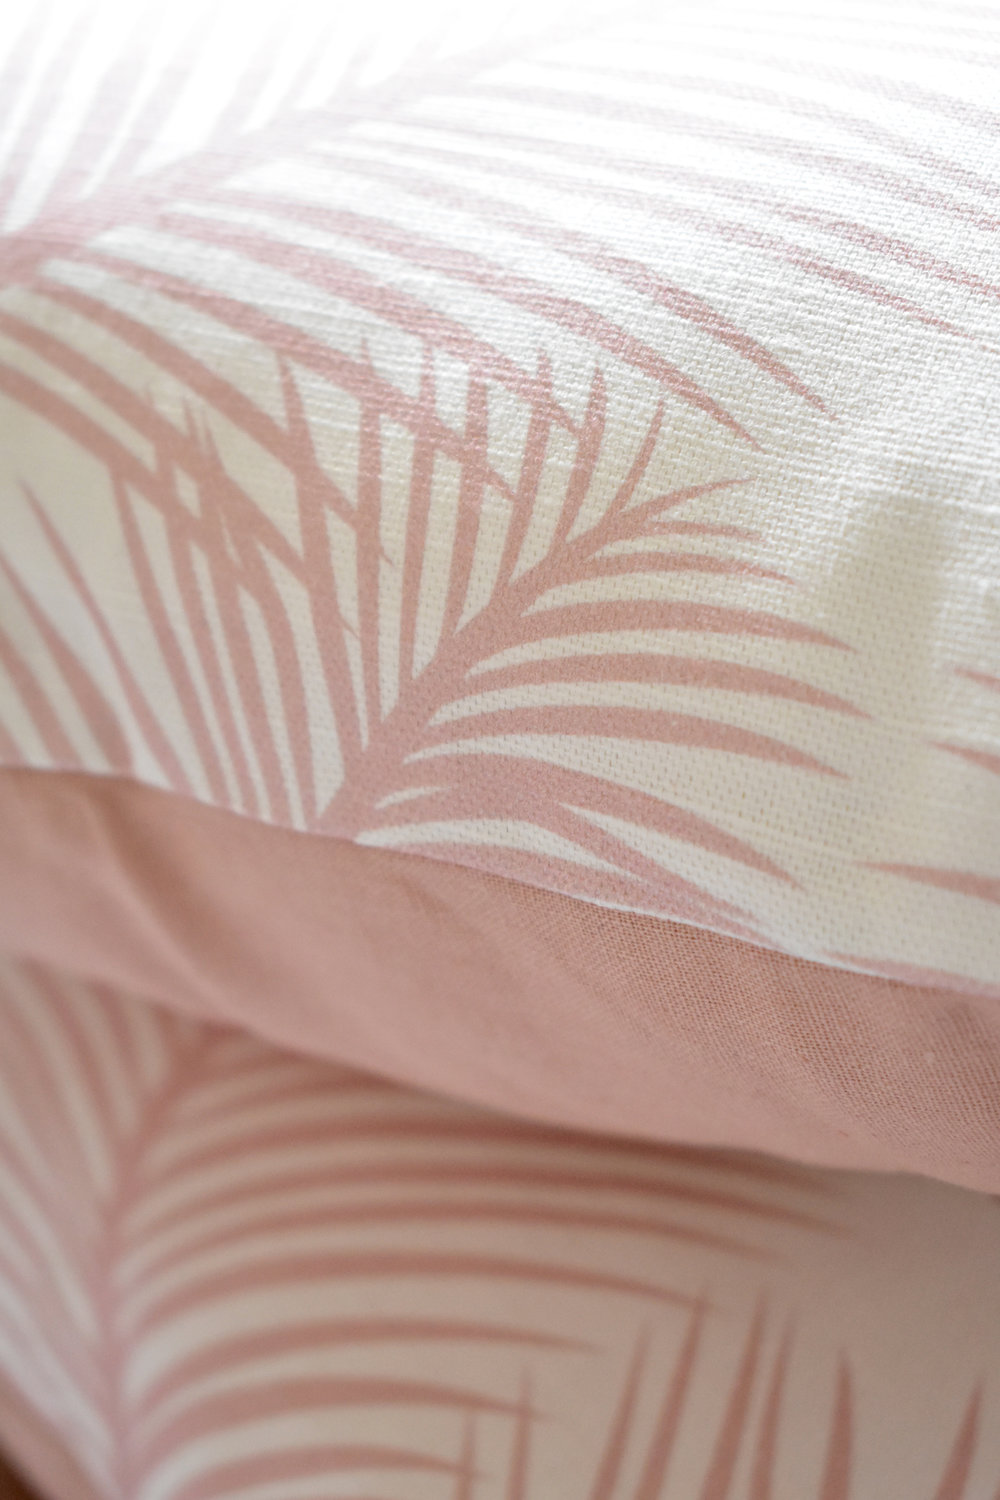 palm leaf cushion detail 2.jpg